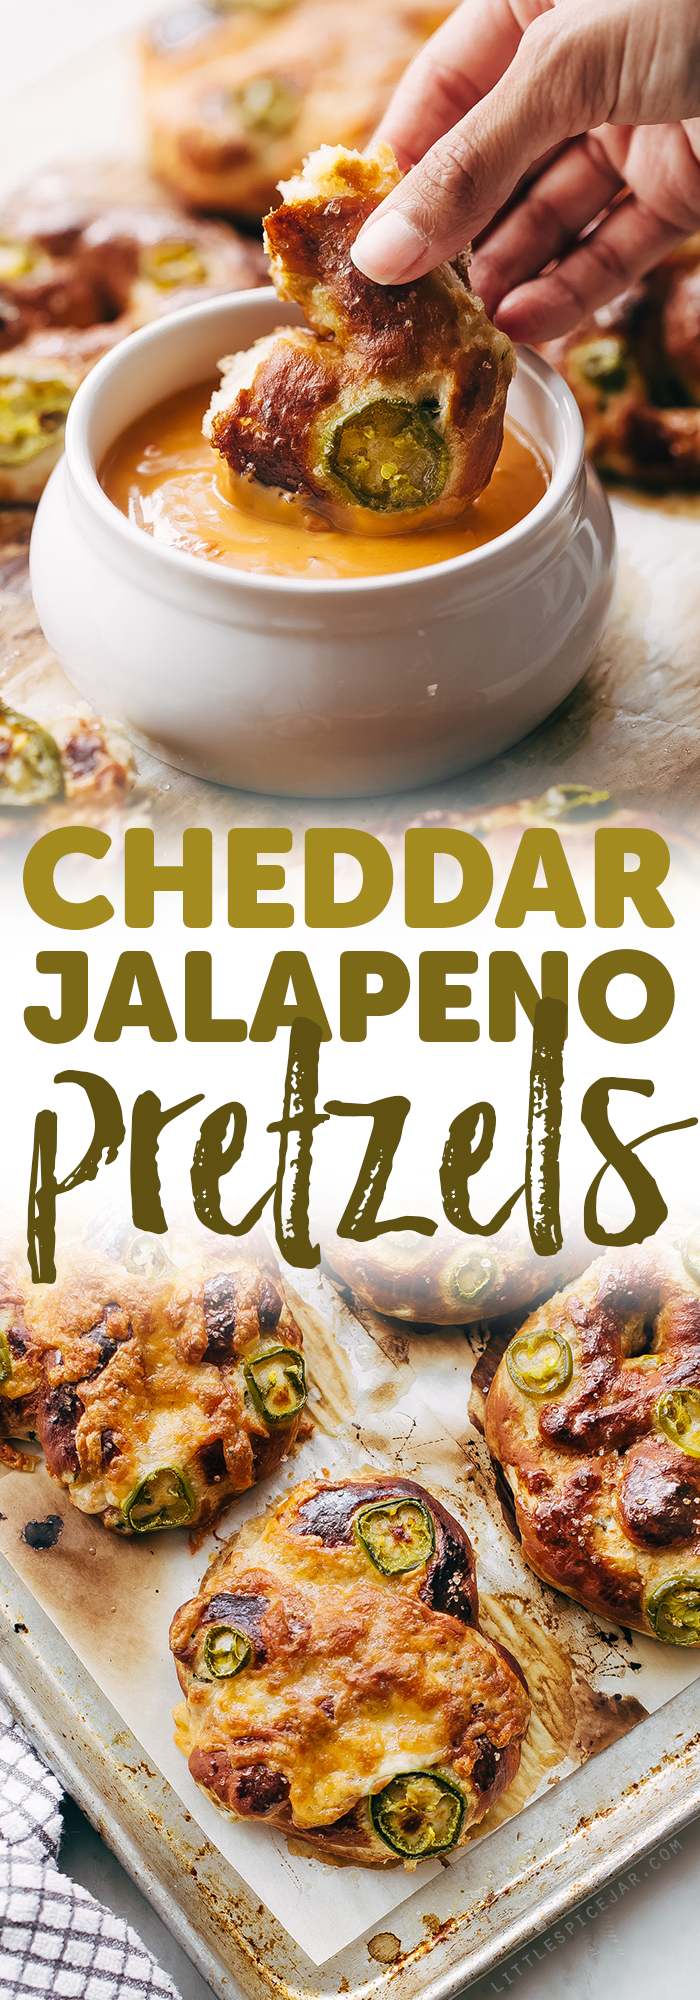 Cheddar Jalapeño Soft Pretzels - made with simple ingredients and loaded with tamed jalapeños and tons of cheddar cheese on top! So good you'll crave them ALL THE TIME! #softpretzels #jalapeñopretzels #jalapenosoftpretzels #softpretzelrecipe | Littlespicejar.com